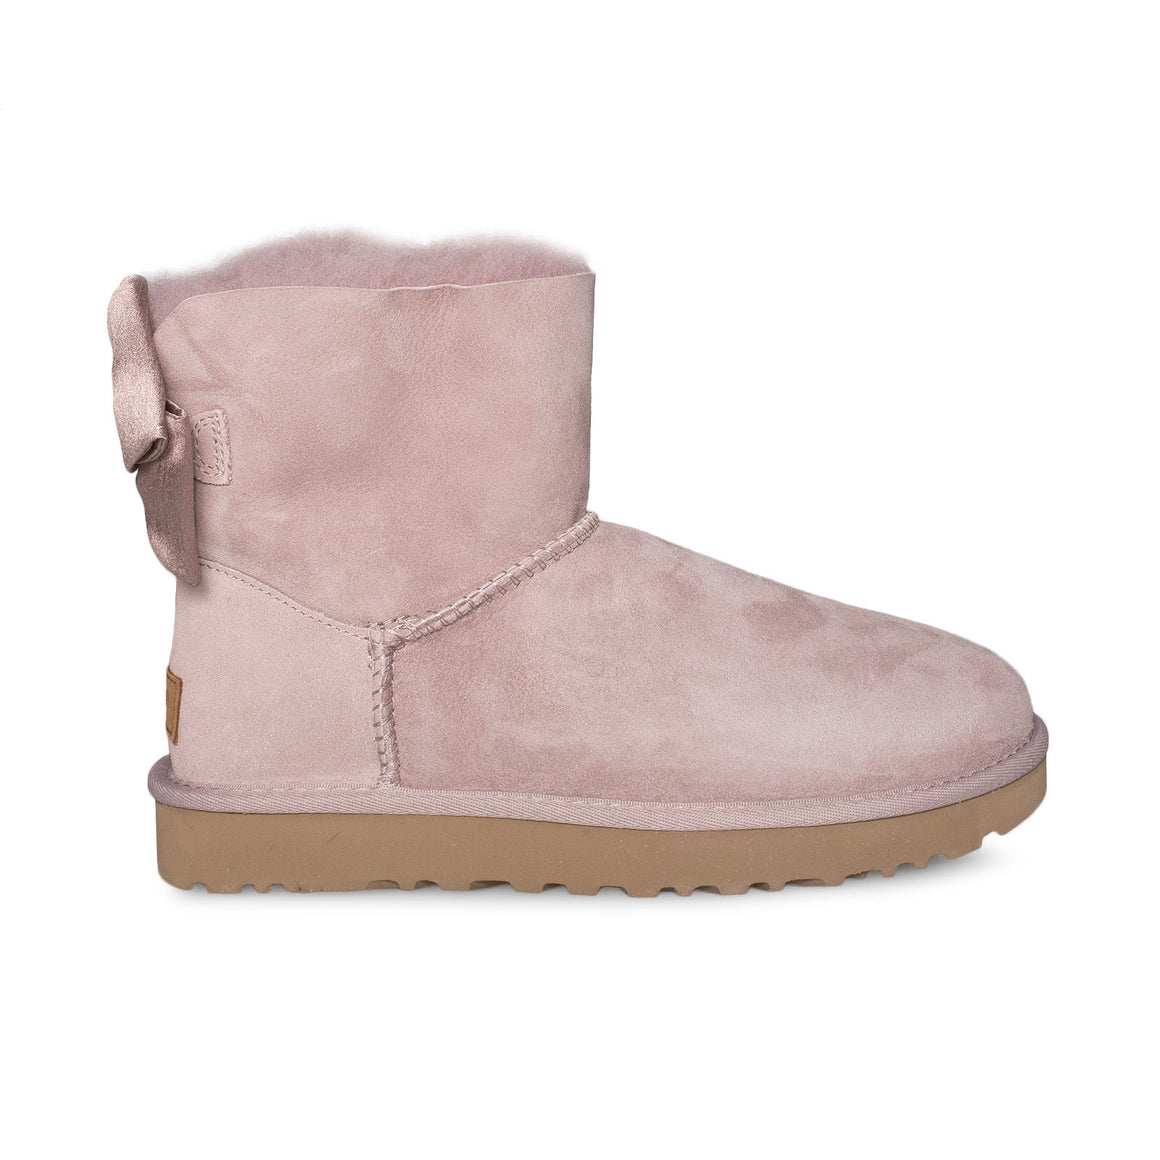 UGG Mini Bailey Bow II Glam Dusk Boots - Women's